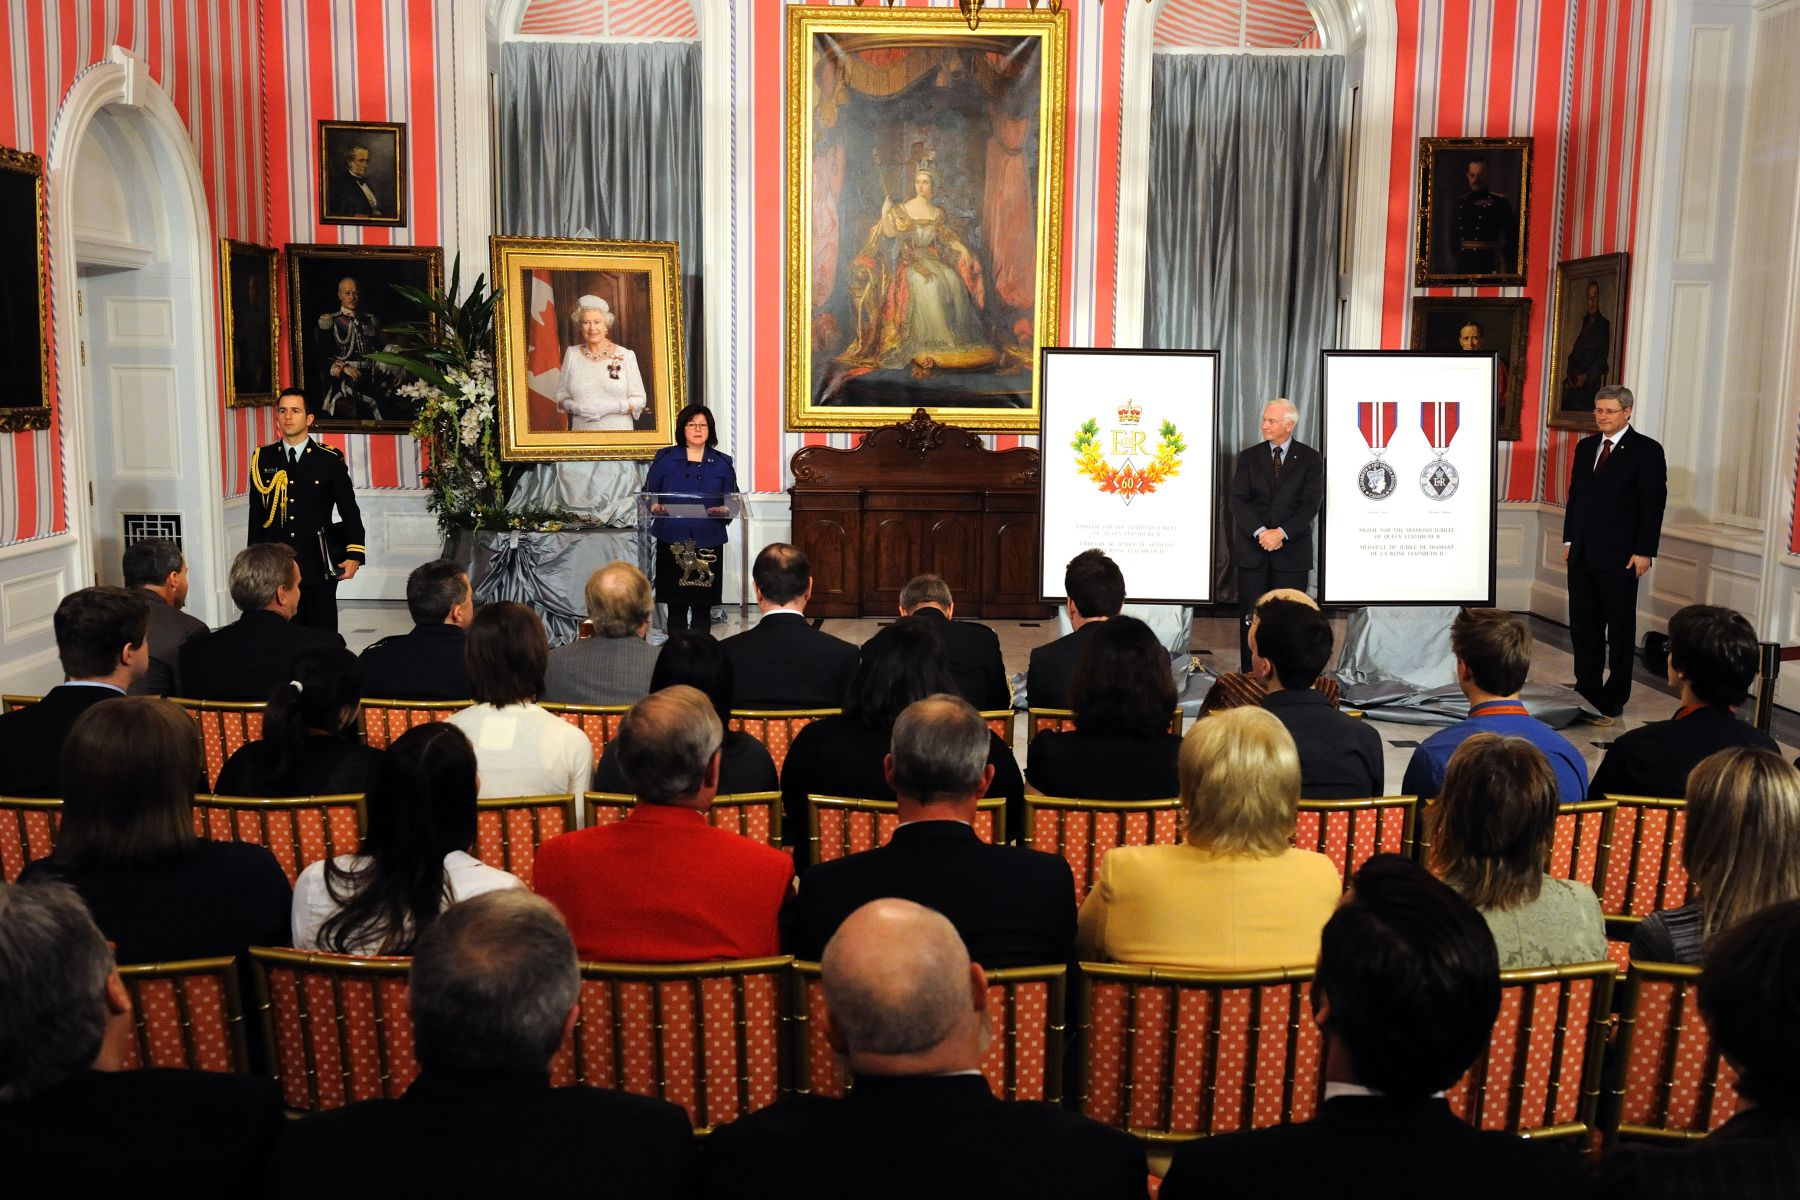 The Queen Elizabeth II Diamond Jubilee Medal will mark the 60th anniversary of Her Majesty's accession to the throne on February 6,  1952, which will be celebrated next year. The medal will serve to honour significant contributions and achievements by Canadians. More information on the medal is available at www.gg.ca/diamondjubilee.